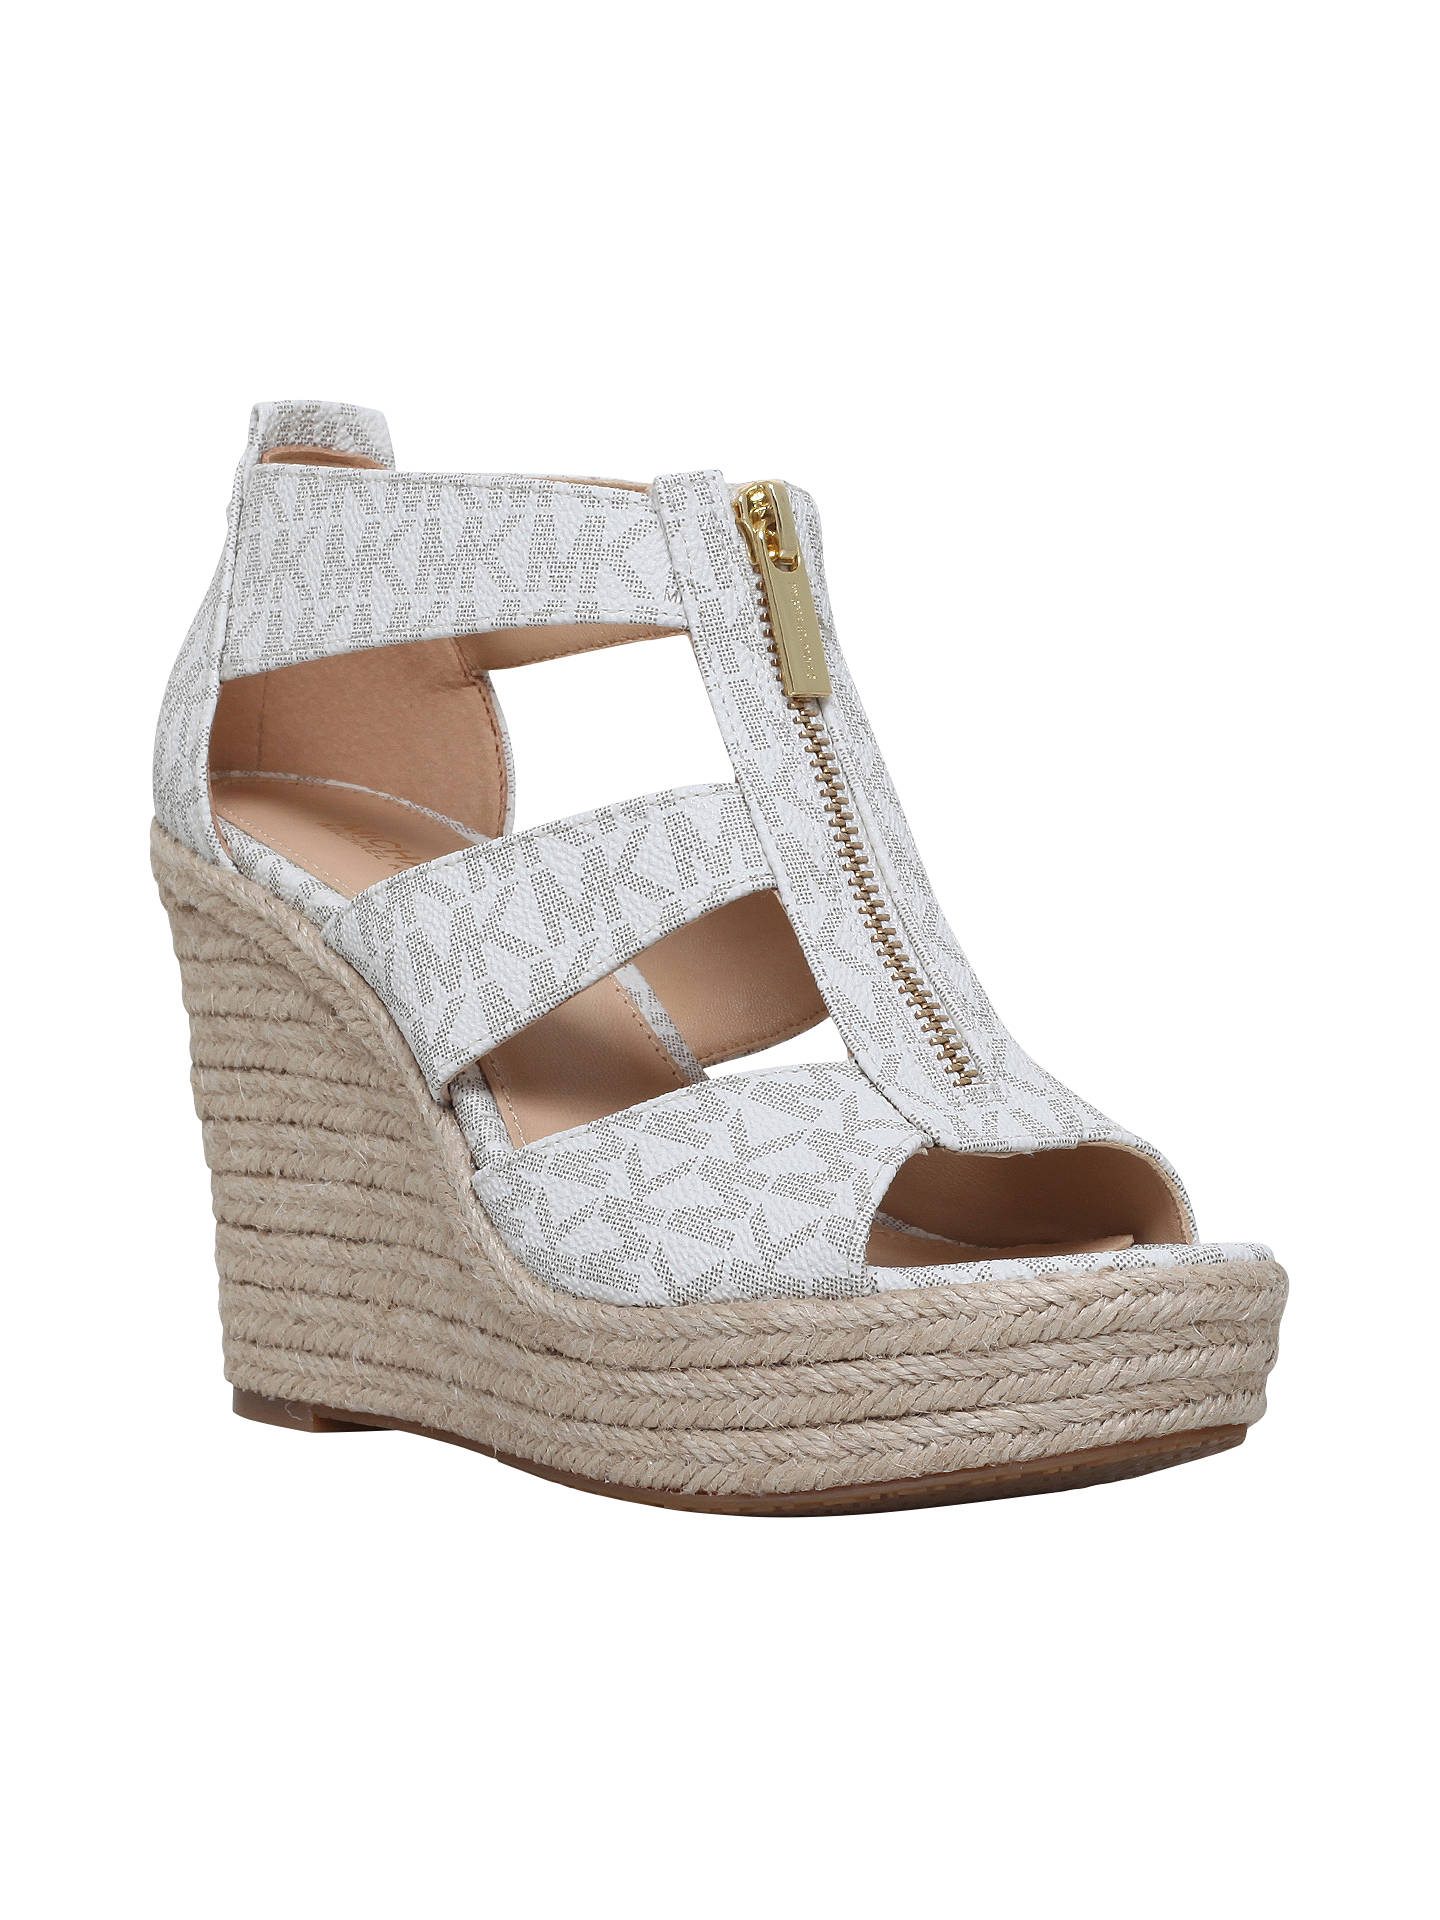 97b5de0cd75 MICHAEL Michael Kors Damita Wedge Heeled Sandals at John Lewis ...